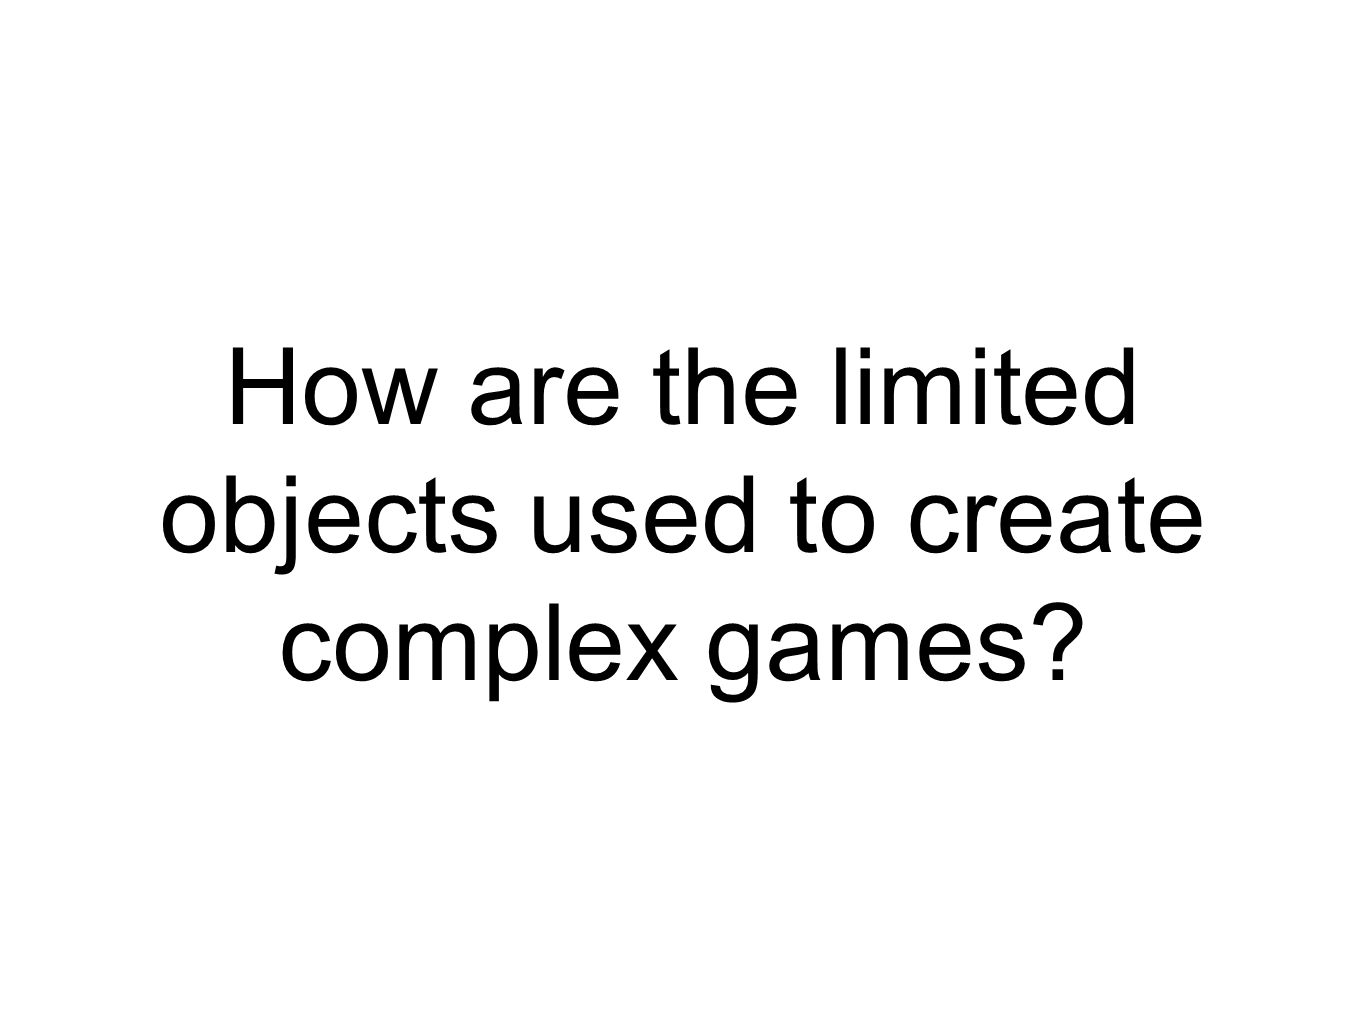 How are the limited objects used to create complex games